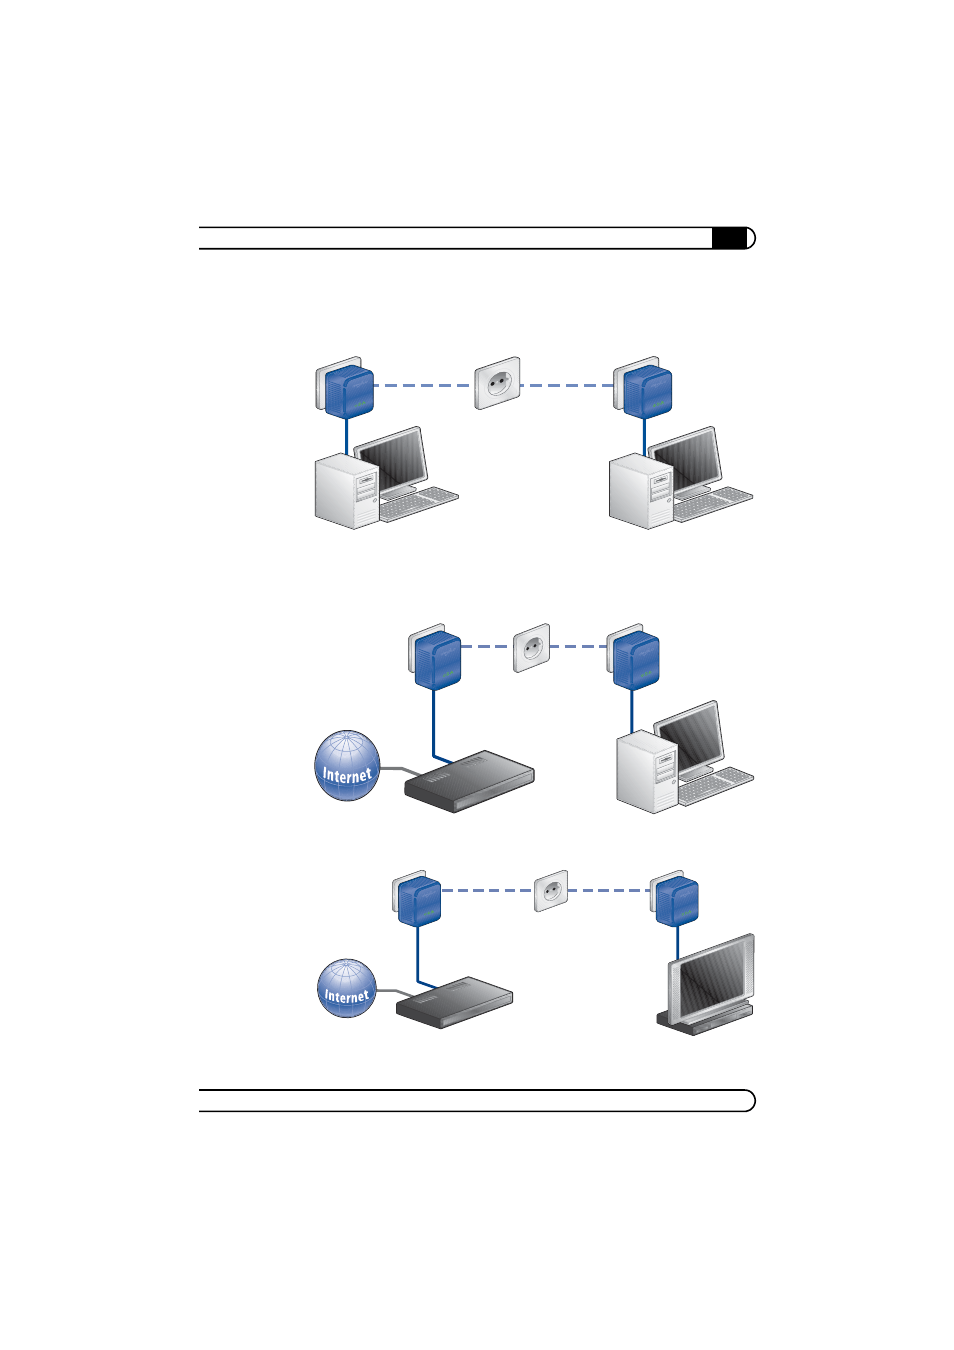 4 sample applications, 1 networking between two computers